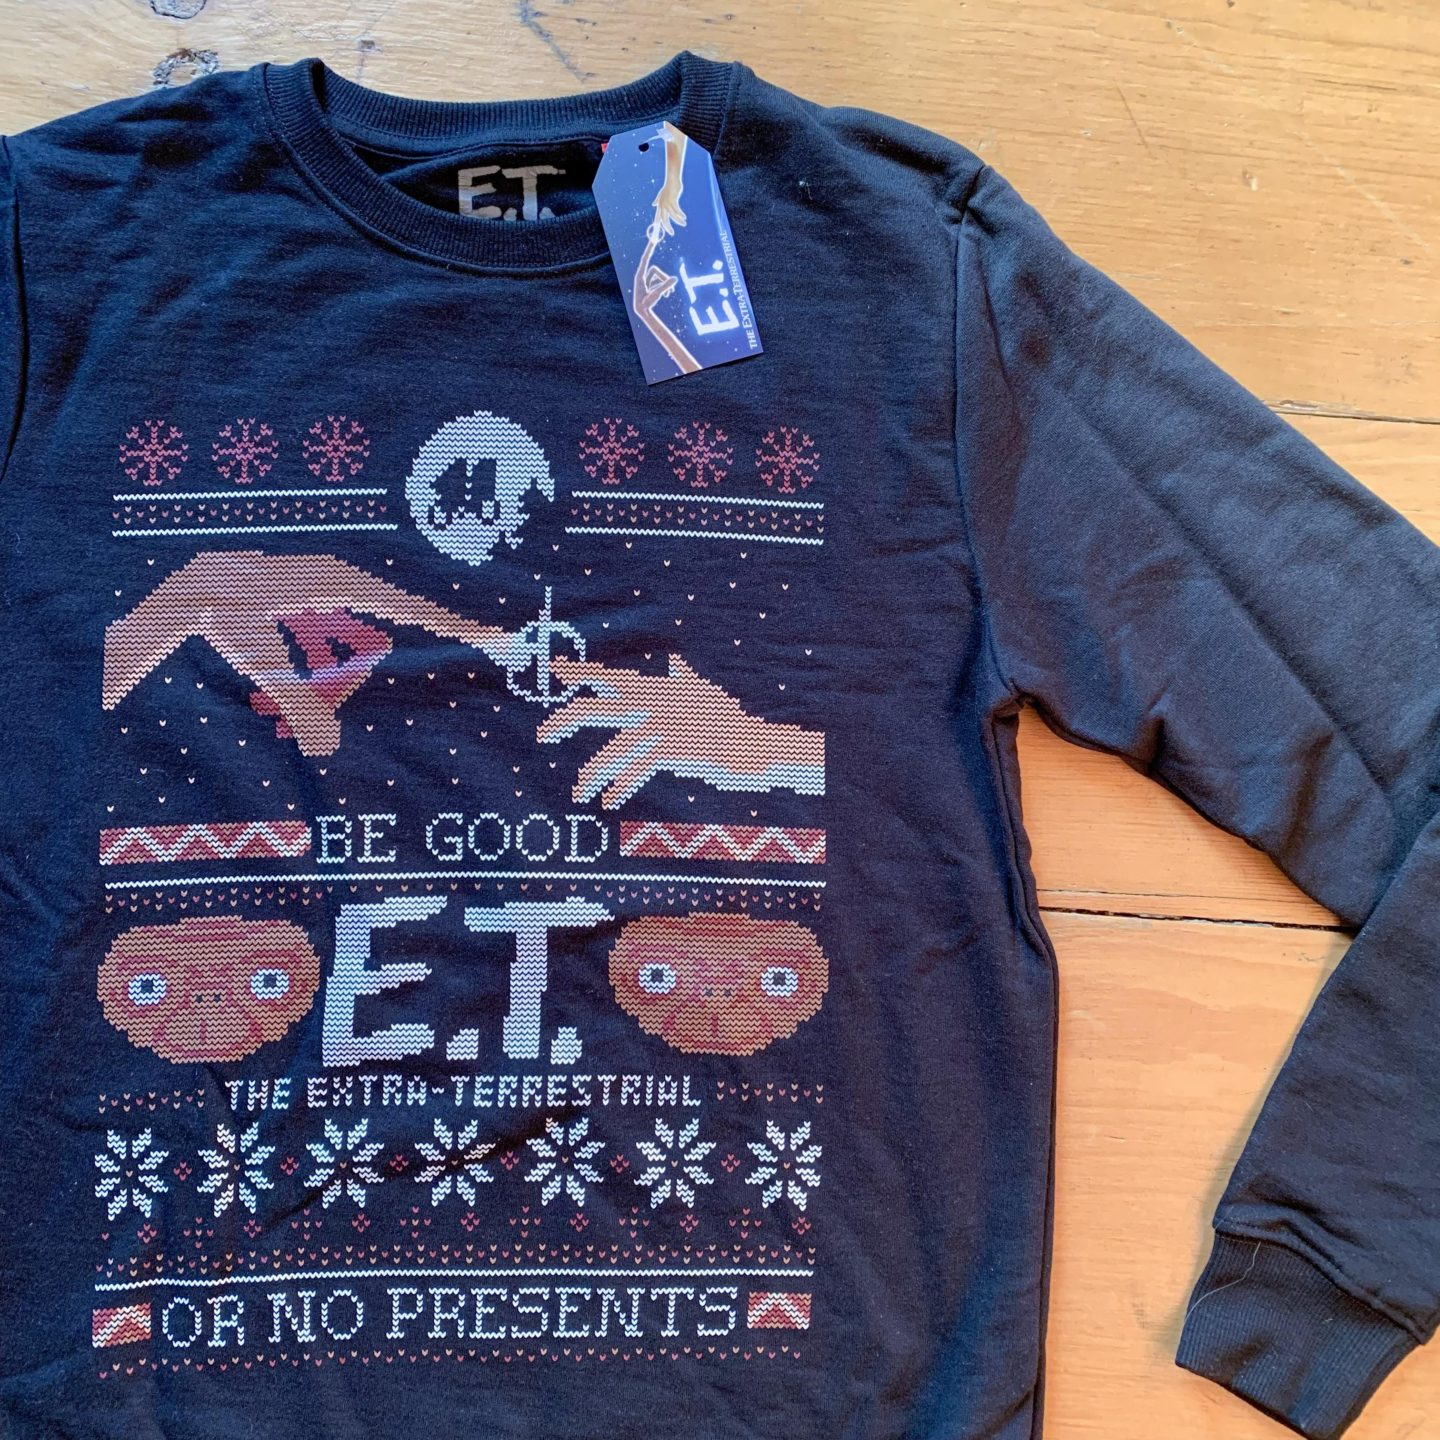 A nevy blue christmas jumper featuring ET The Extra Terrestrial.